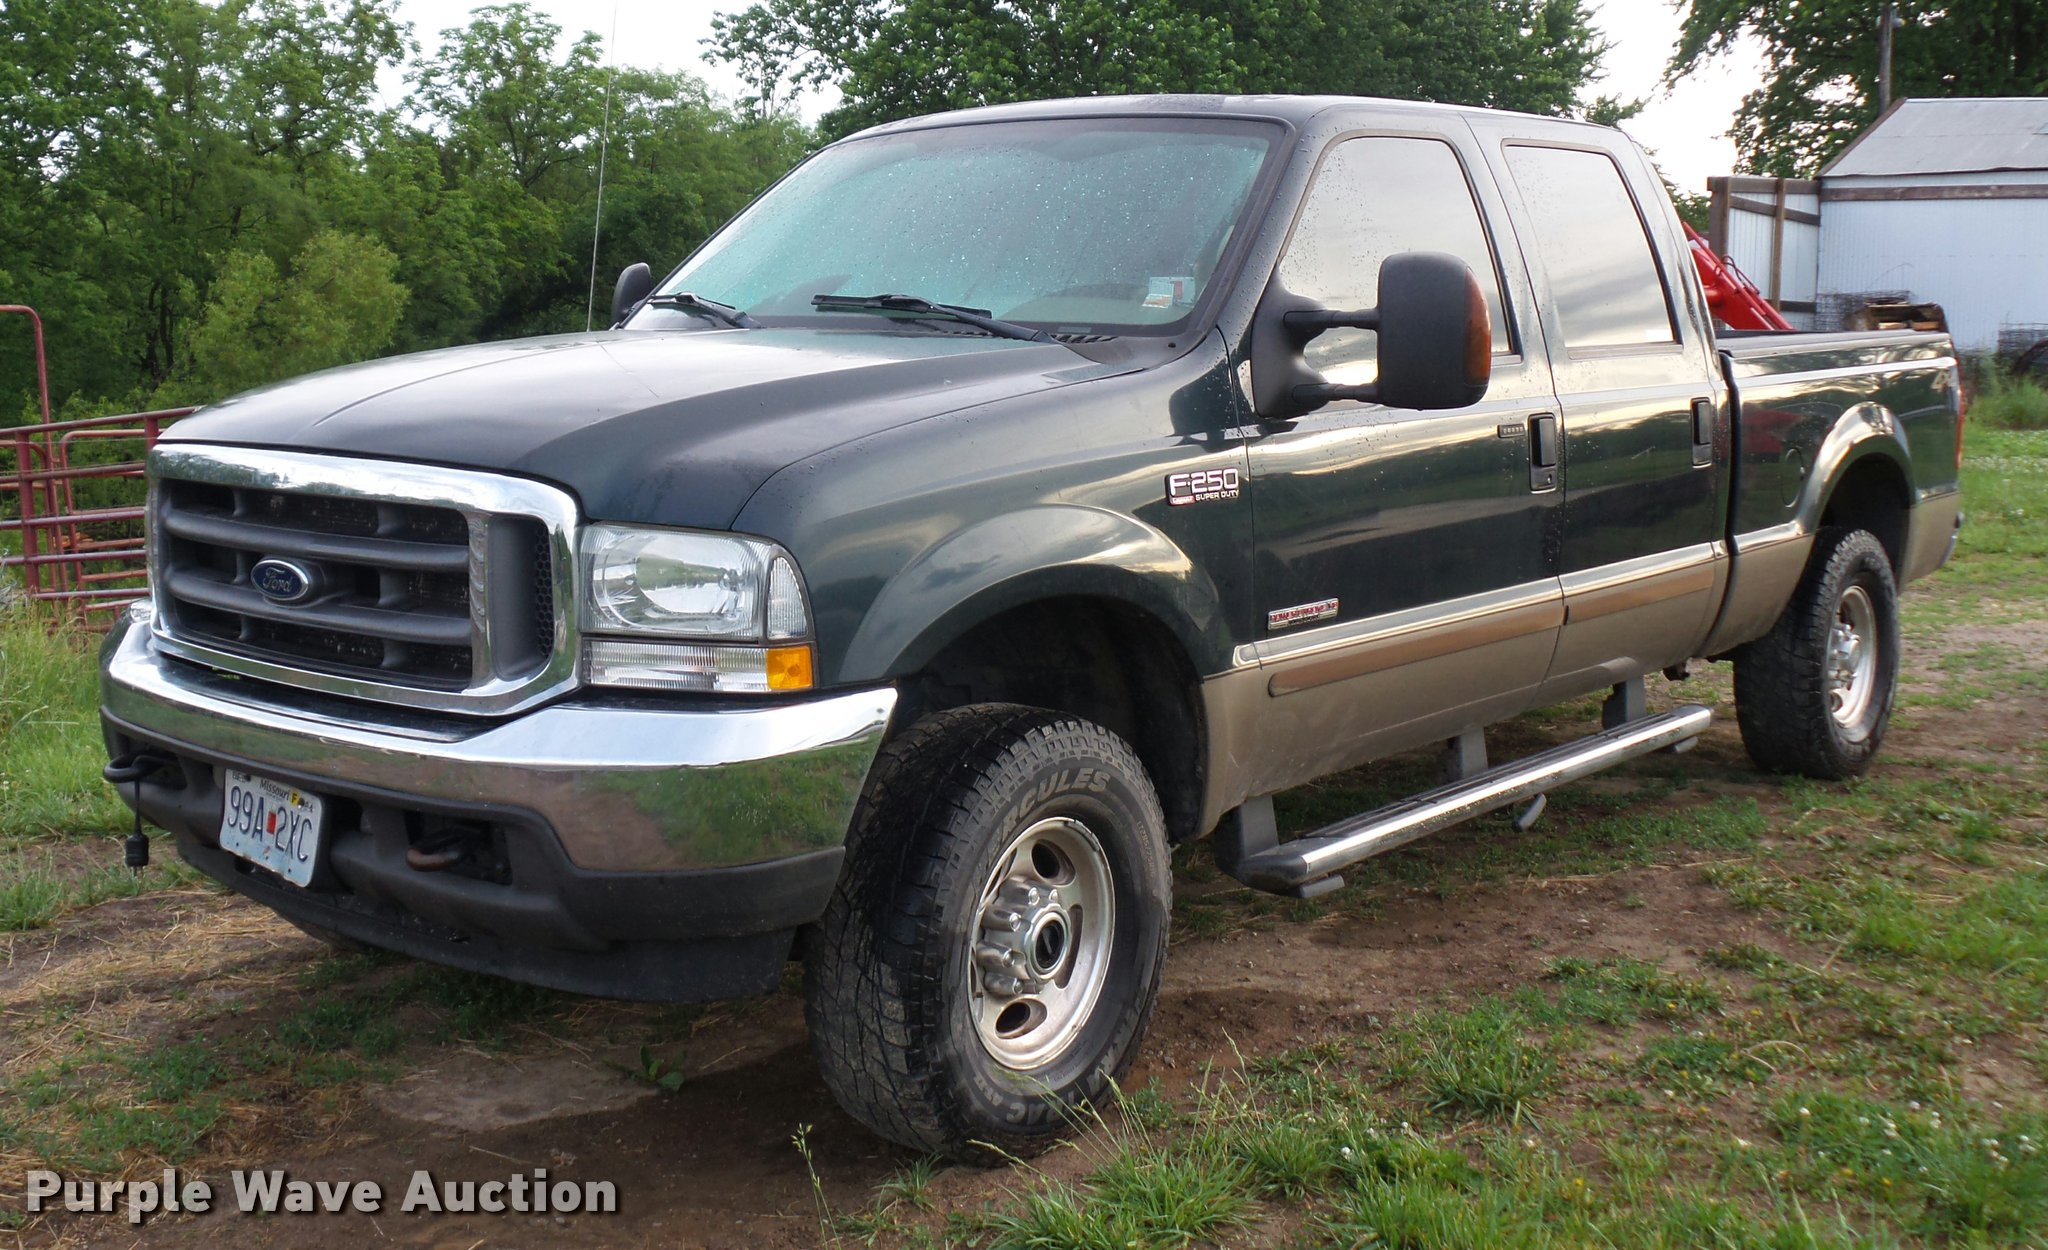 2004 Ford F250 Super Duty Pickup Truck Item Dd9499 Sold F 250 Image For